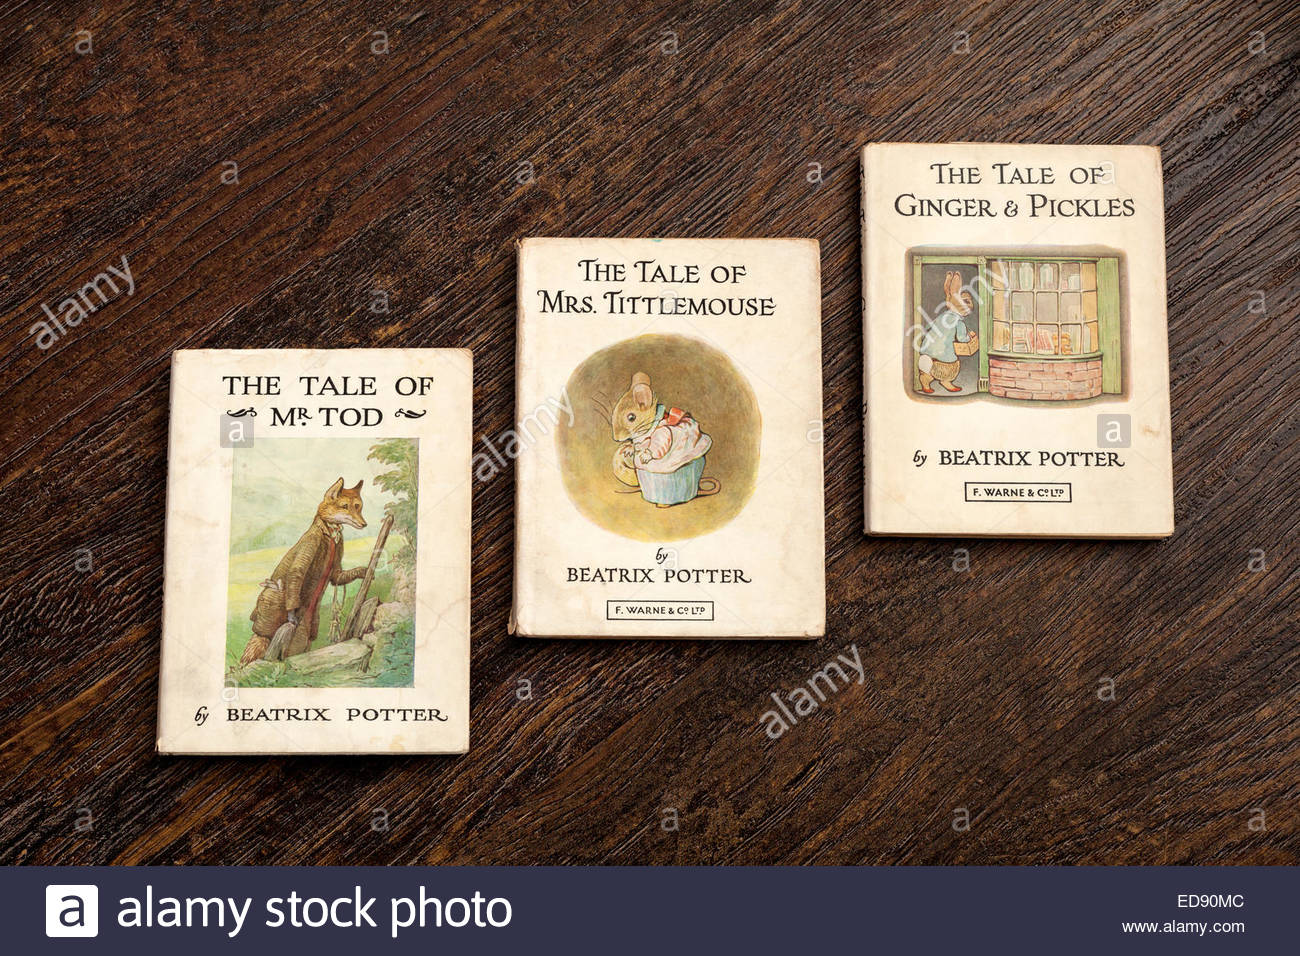 Beatrix Potter Books - The Tale of Mr Tod - The Tale of Mrs Tittlemouse - The Tale of Ginger and Pickles - Stock Image